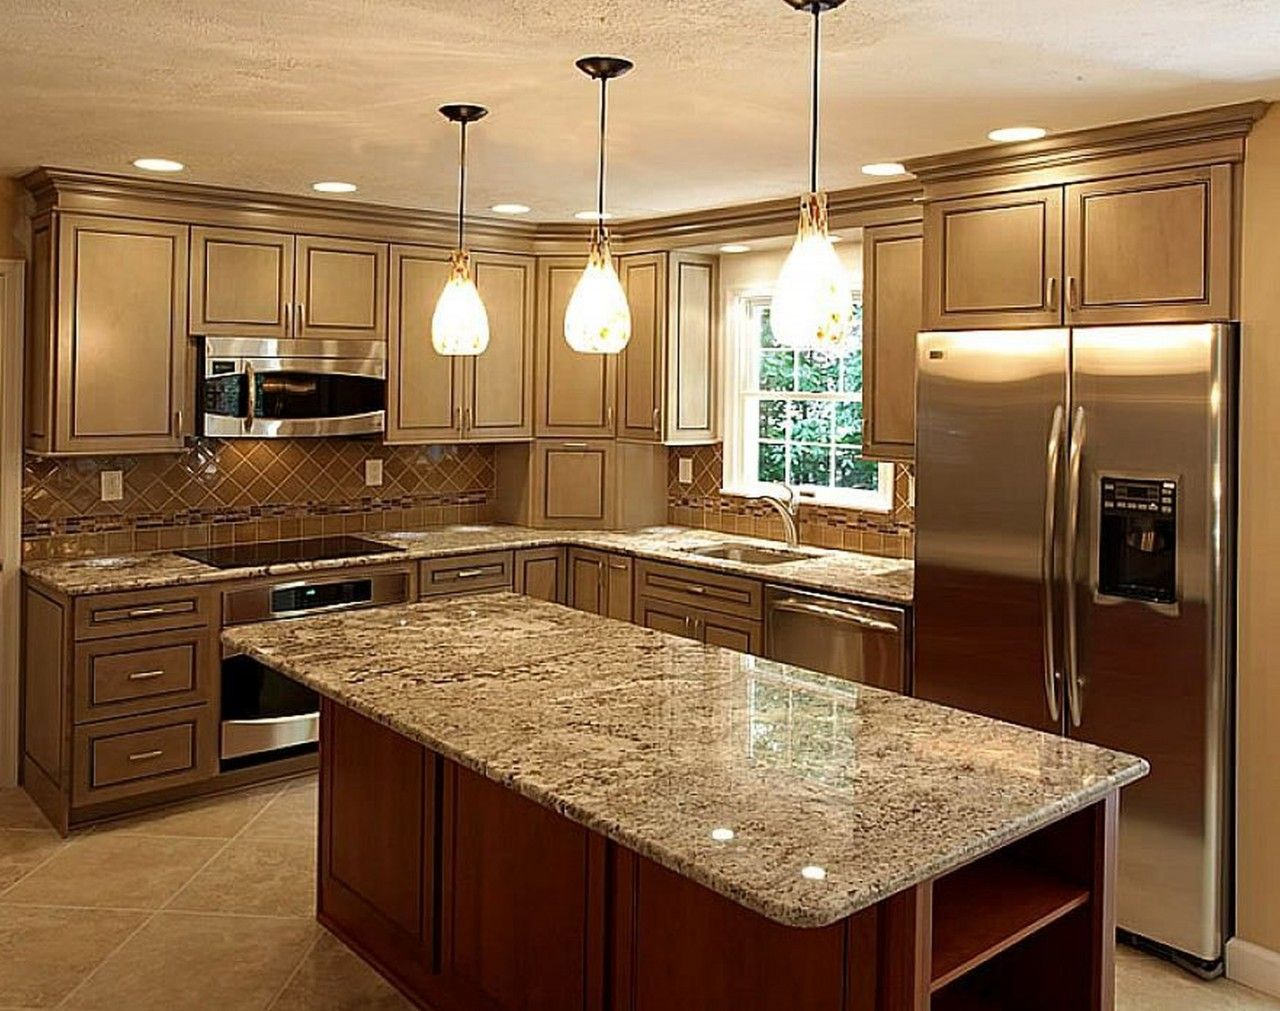 Endearing Home Depot Quartz Countertops Build Magnificent Cambria Quartz  Countertops Colors Wonderful Element Ambience: Brown